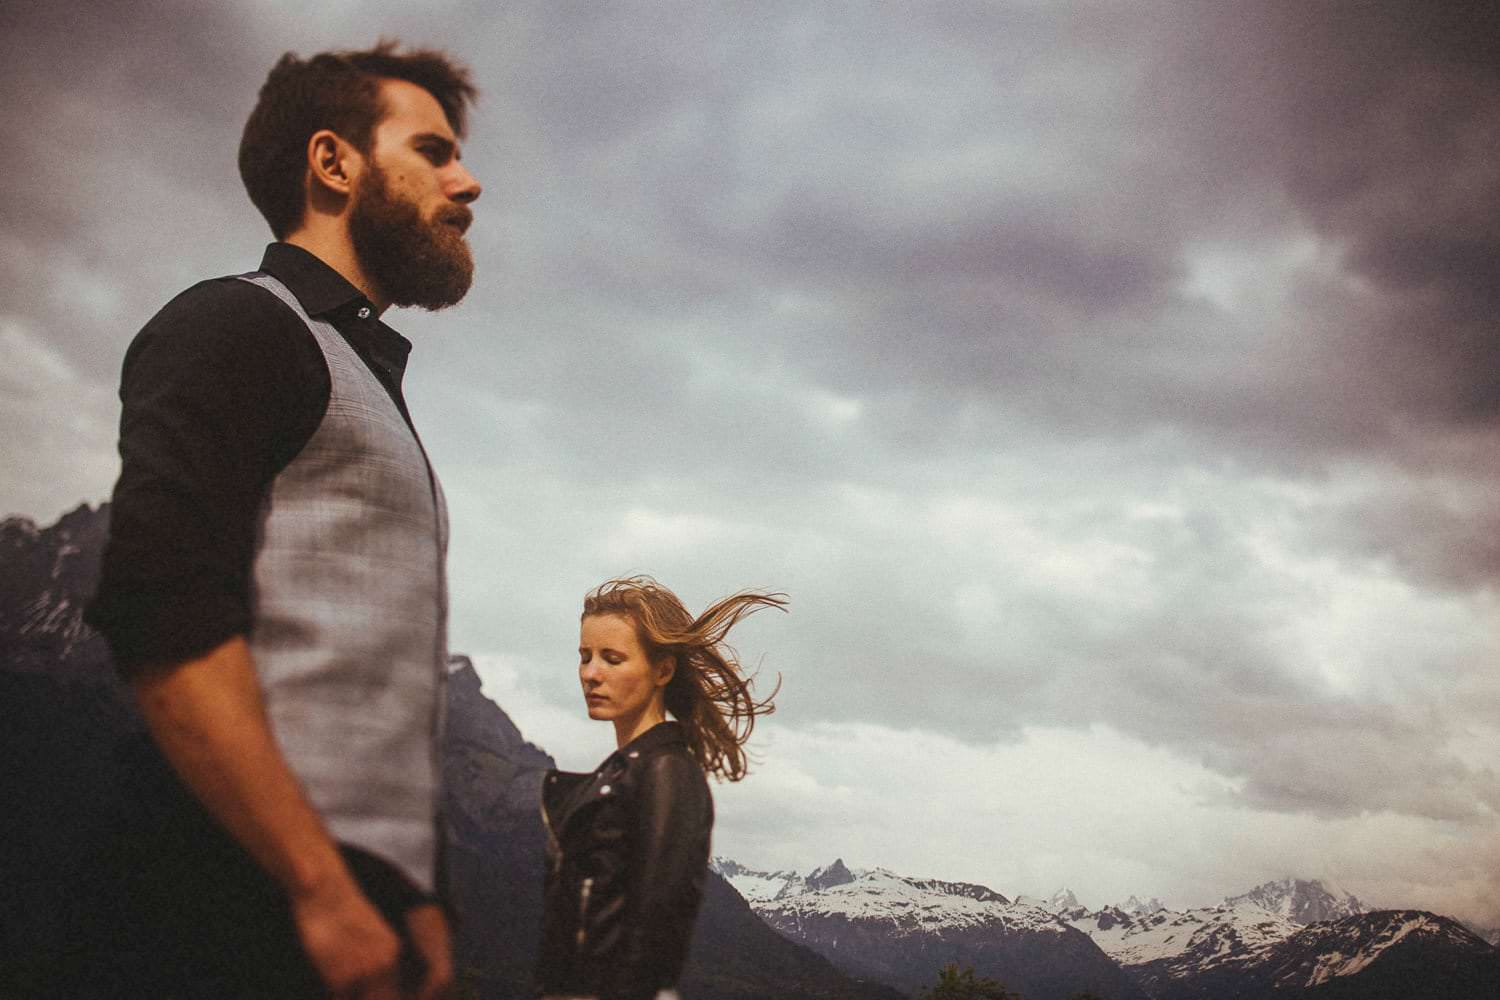 Husband and wife standing in front of the ice capped mountains in the French Alps while celebrating their anniversary with Magic the Photographer